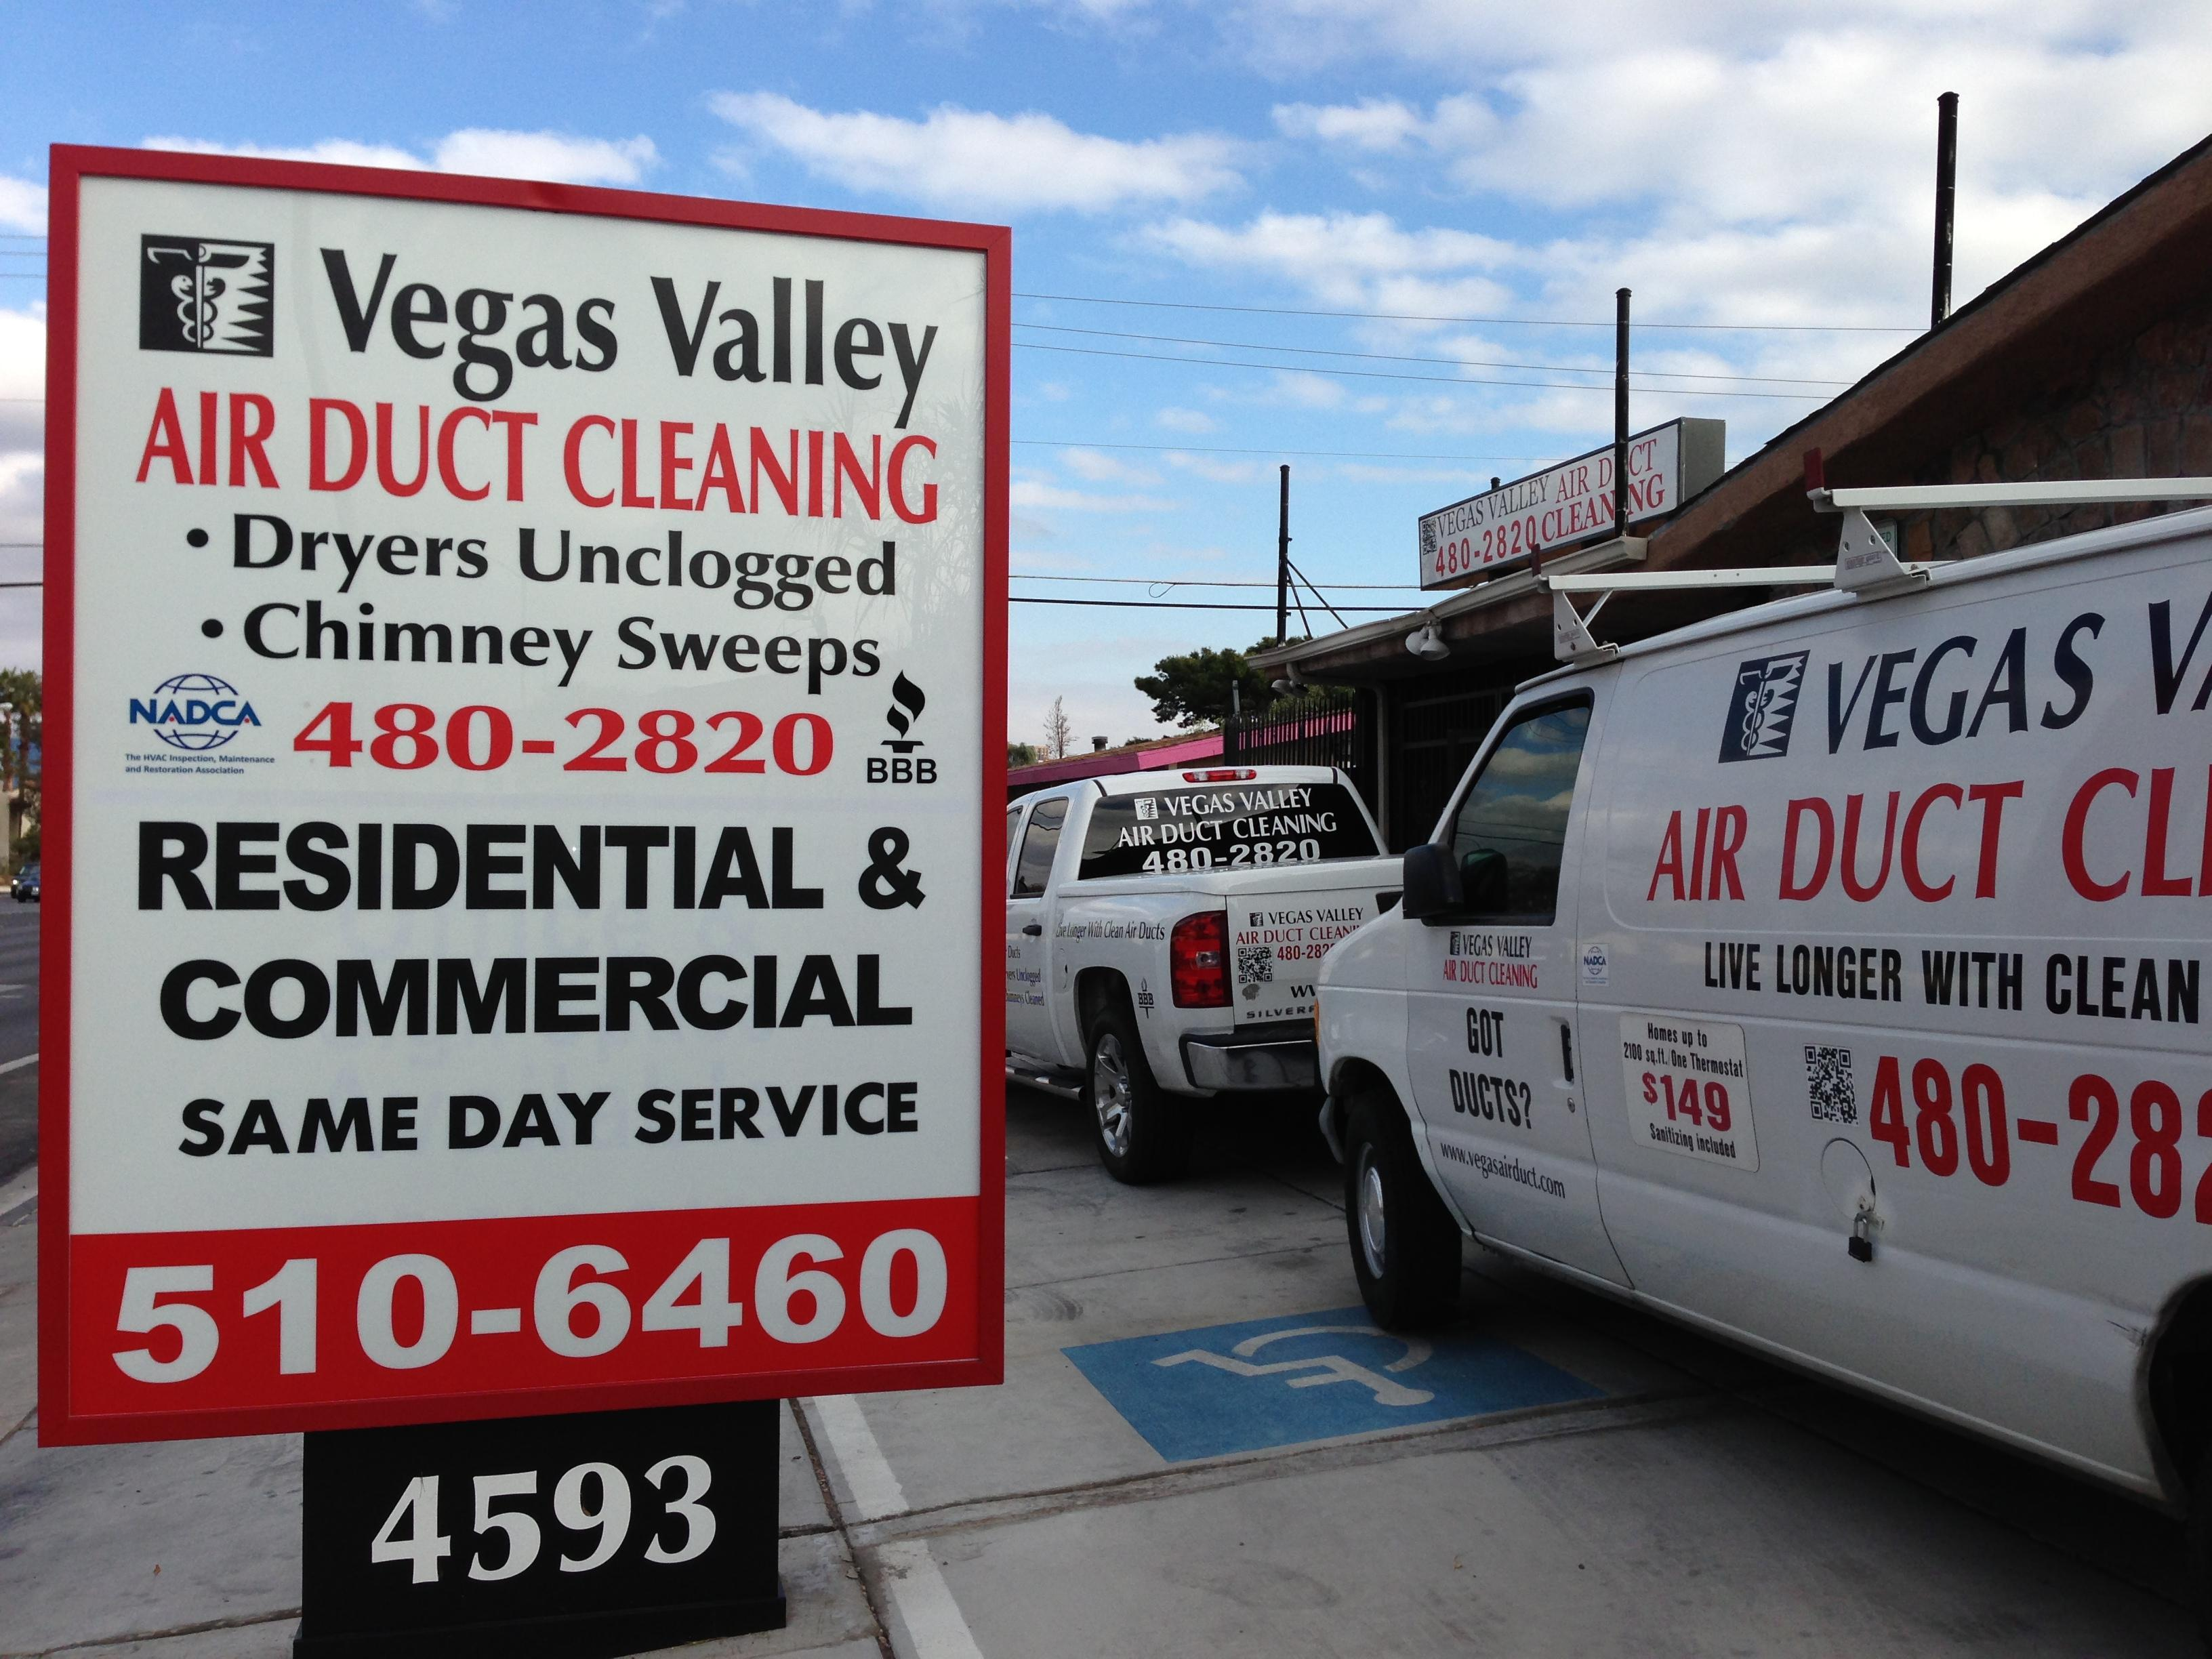 #7E161B VEGAS VALLEY AIR DUCT In Las Vegas NV 702 480 2090 Most Effective 4825 Is Air Duct Cleaning A Scam pictures with 3264x2448 px on helpvideos.info - Air Conditioners, Air Coolers and more